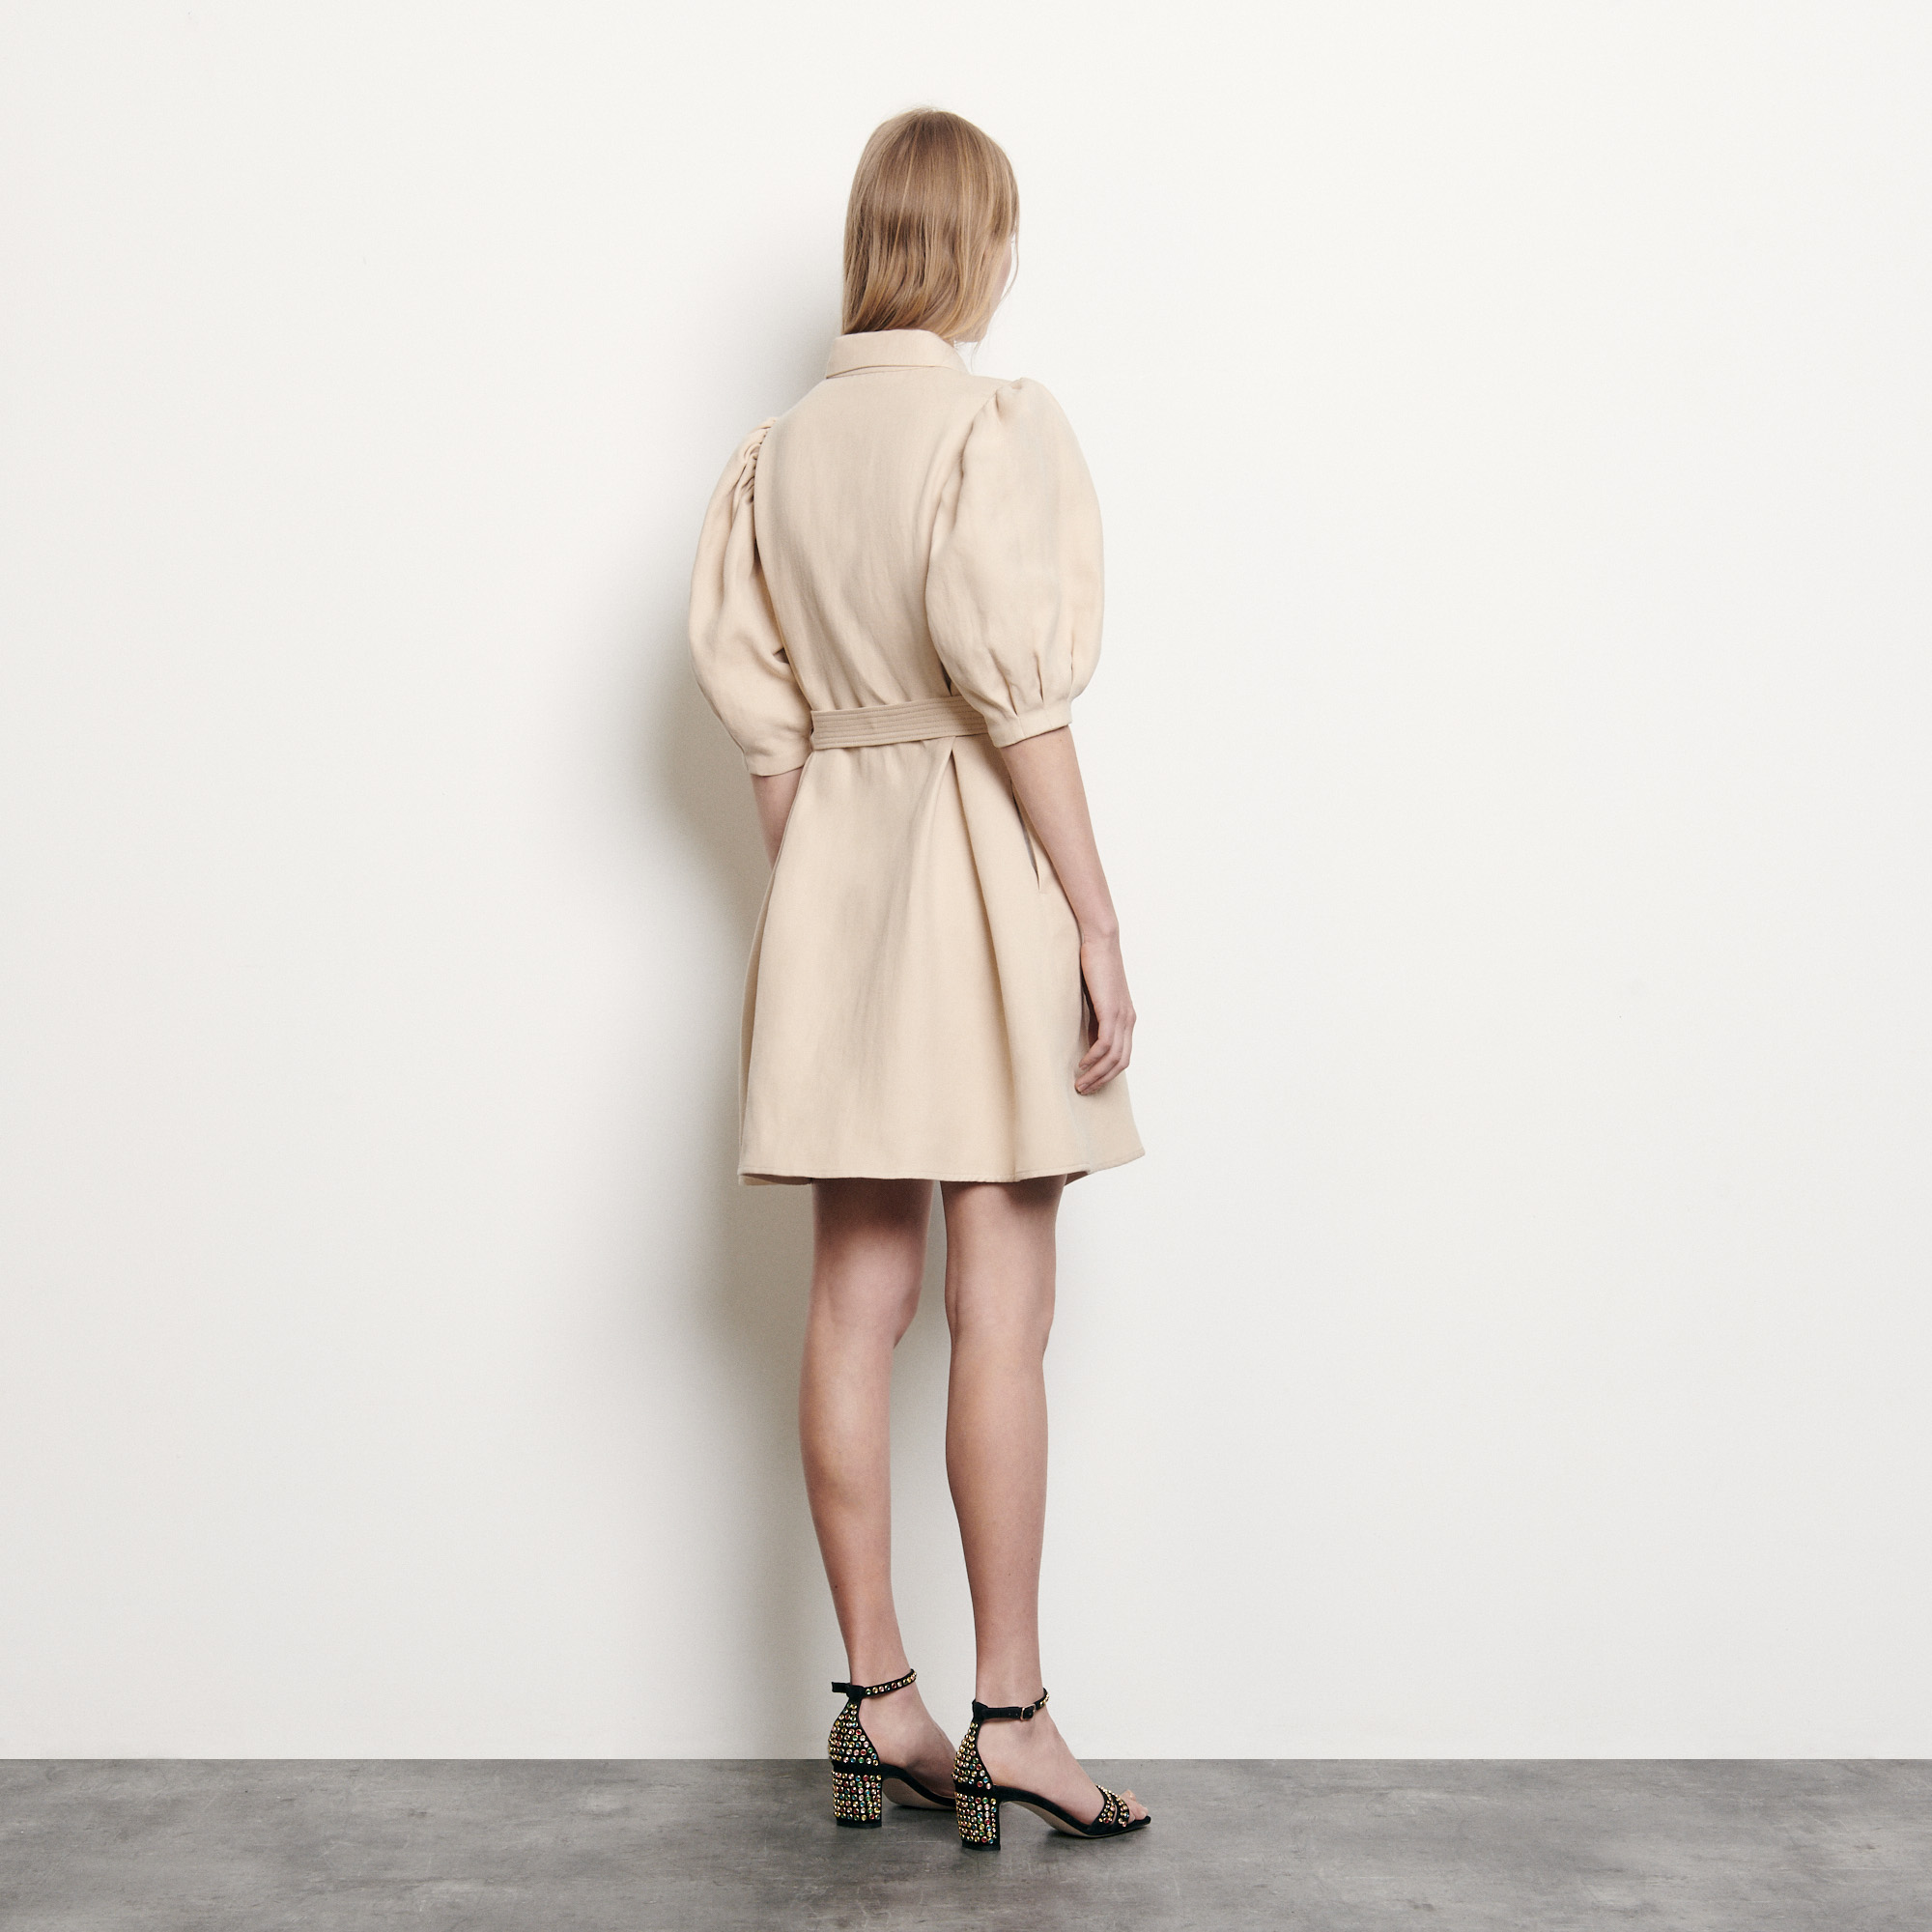 Coat dress in cotton and linen - Beige